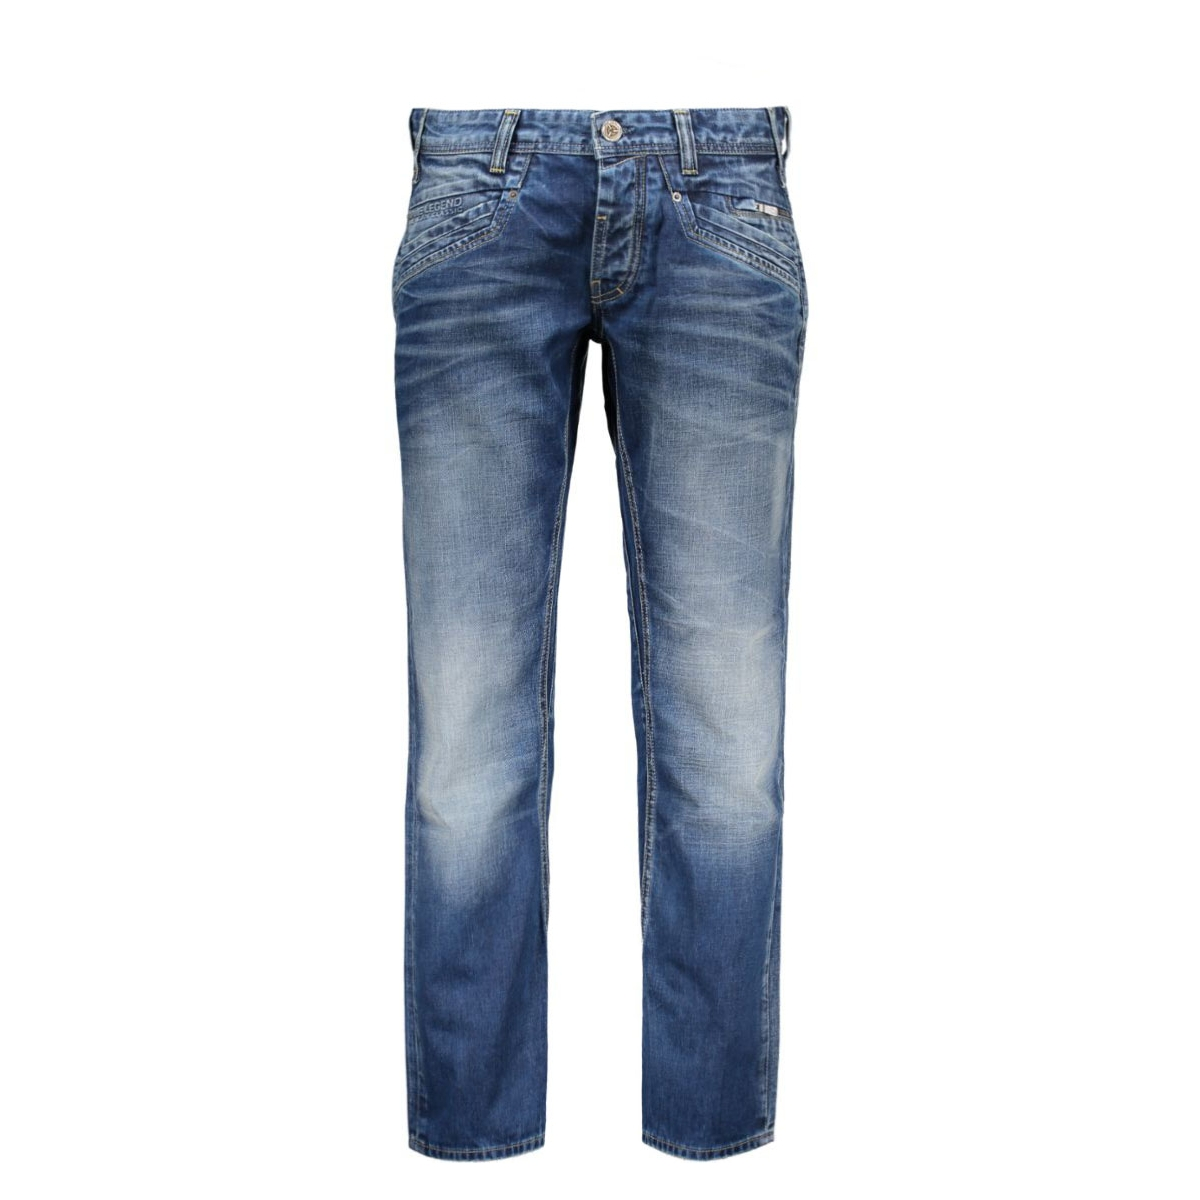 denim bare metal ptr970 pme legend jeans abl